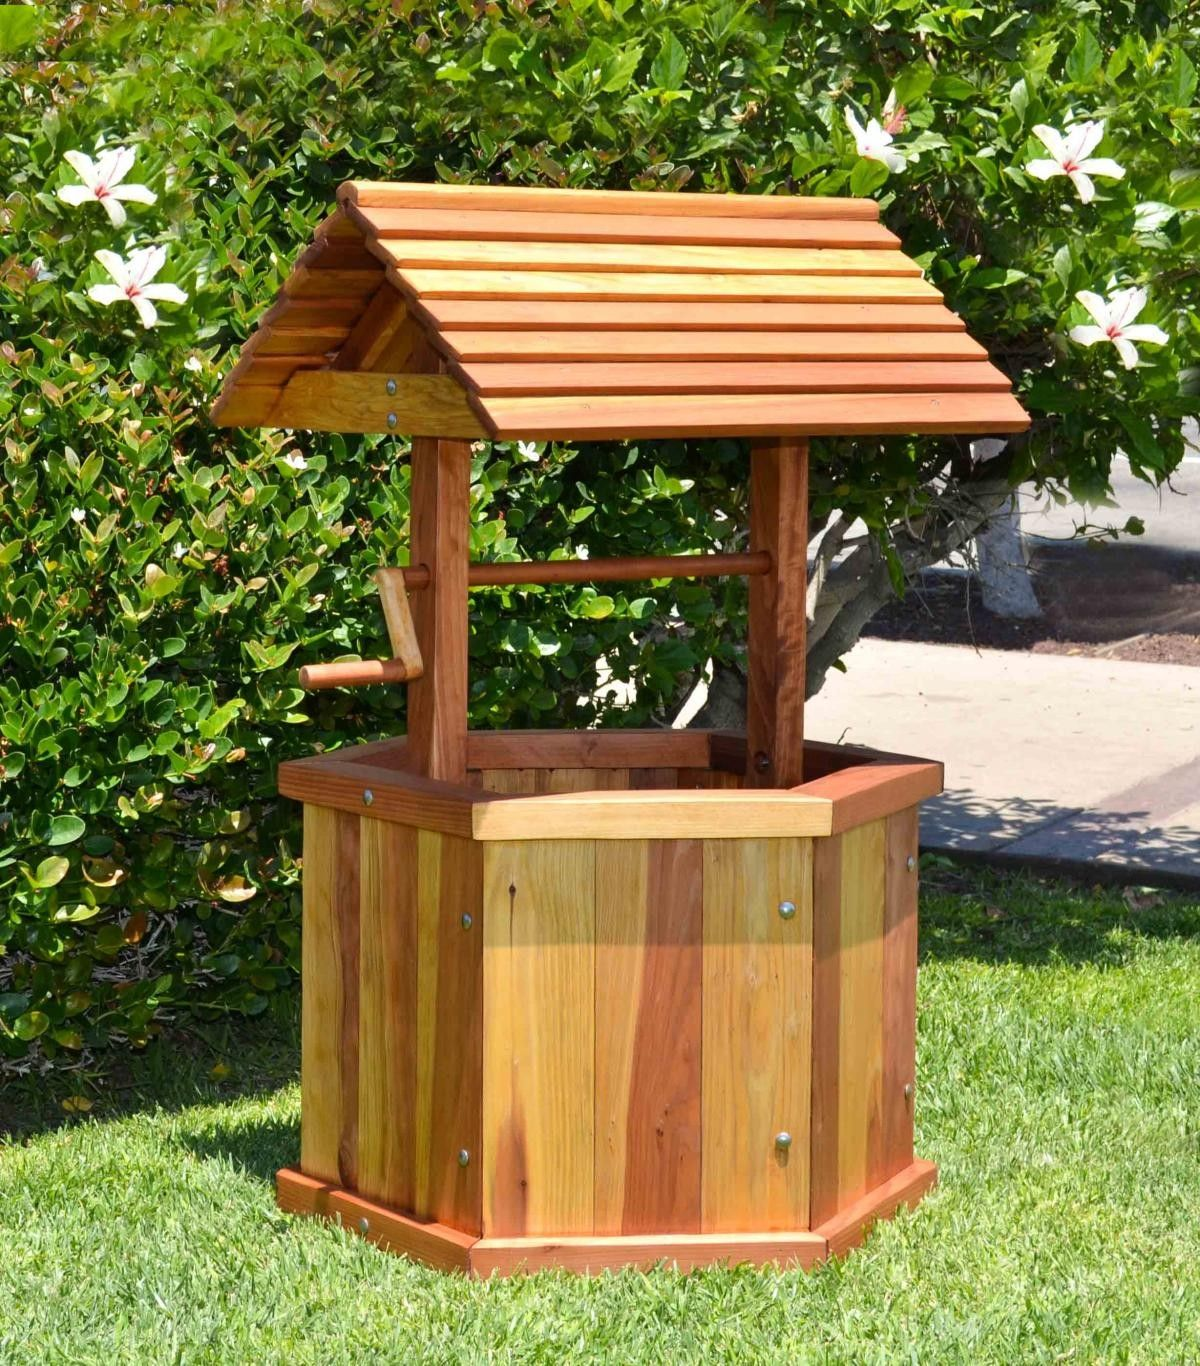 Good design creating a barrel like base without the angles or staves of wishing welloutdoor projectslandscaping ideasbarrelmake